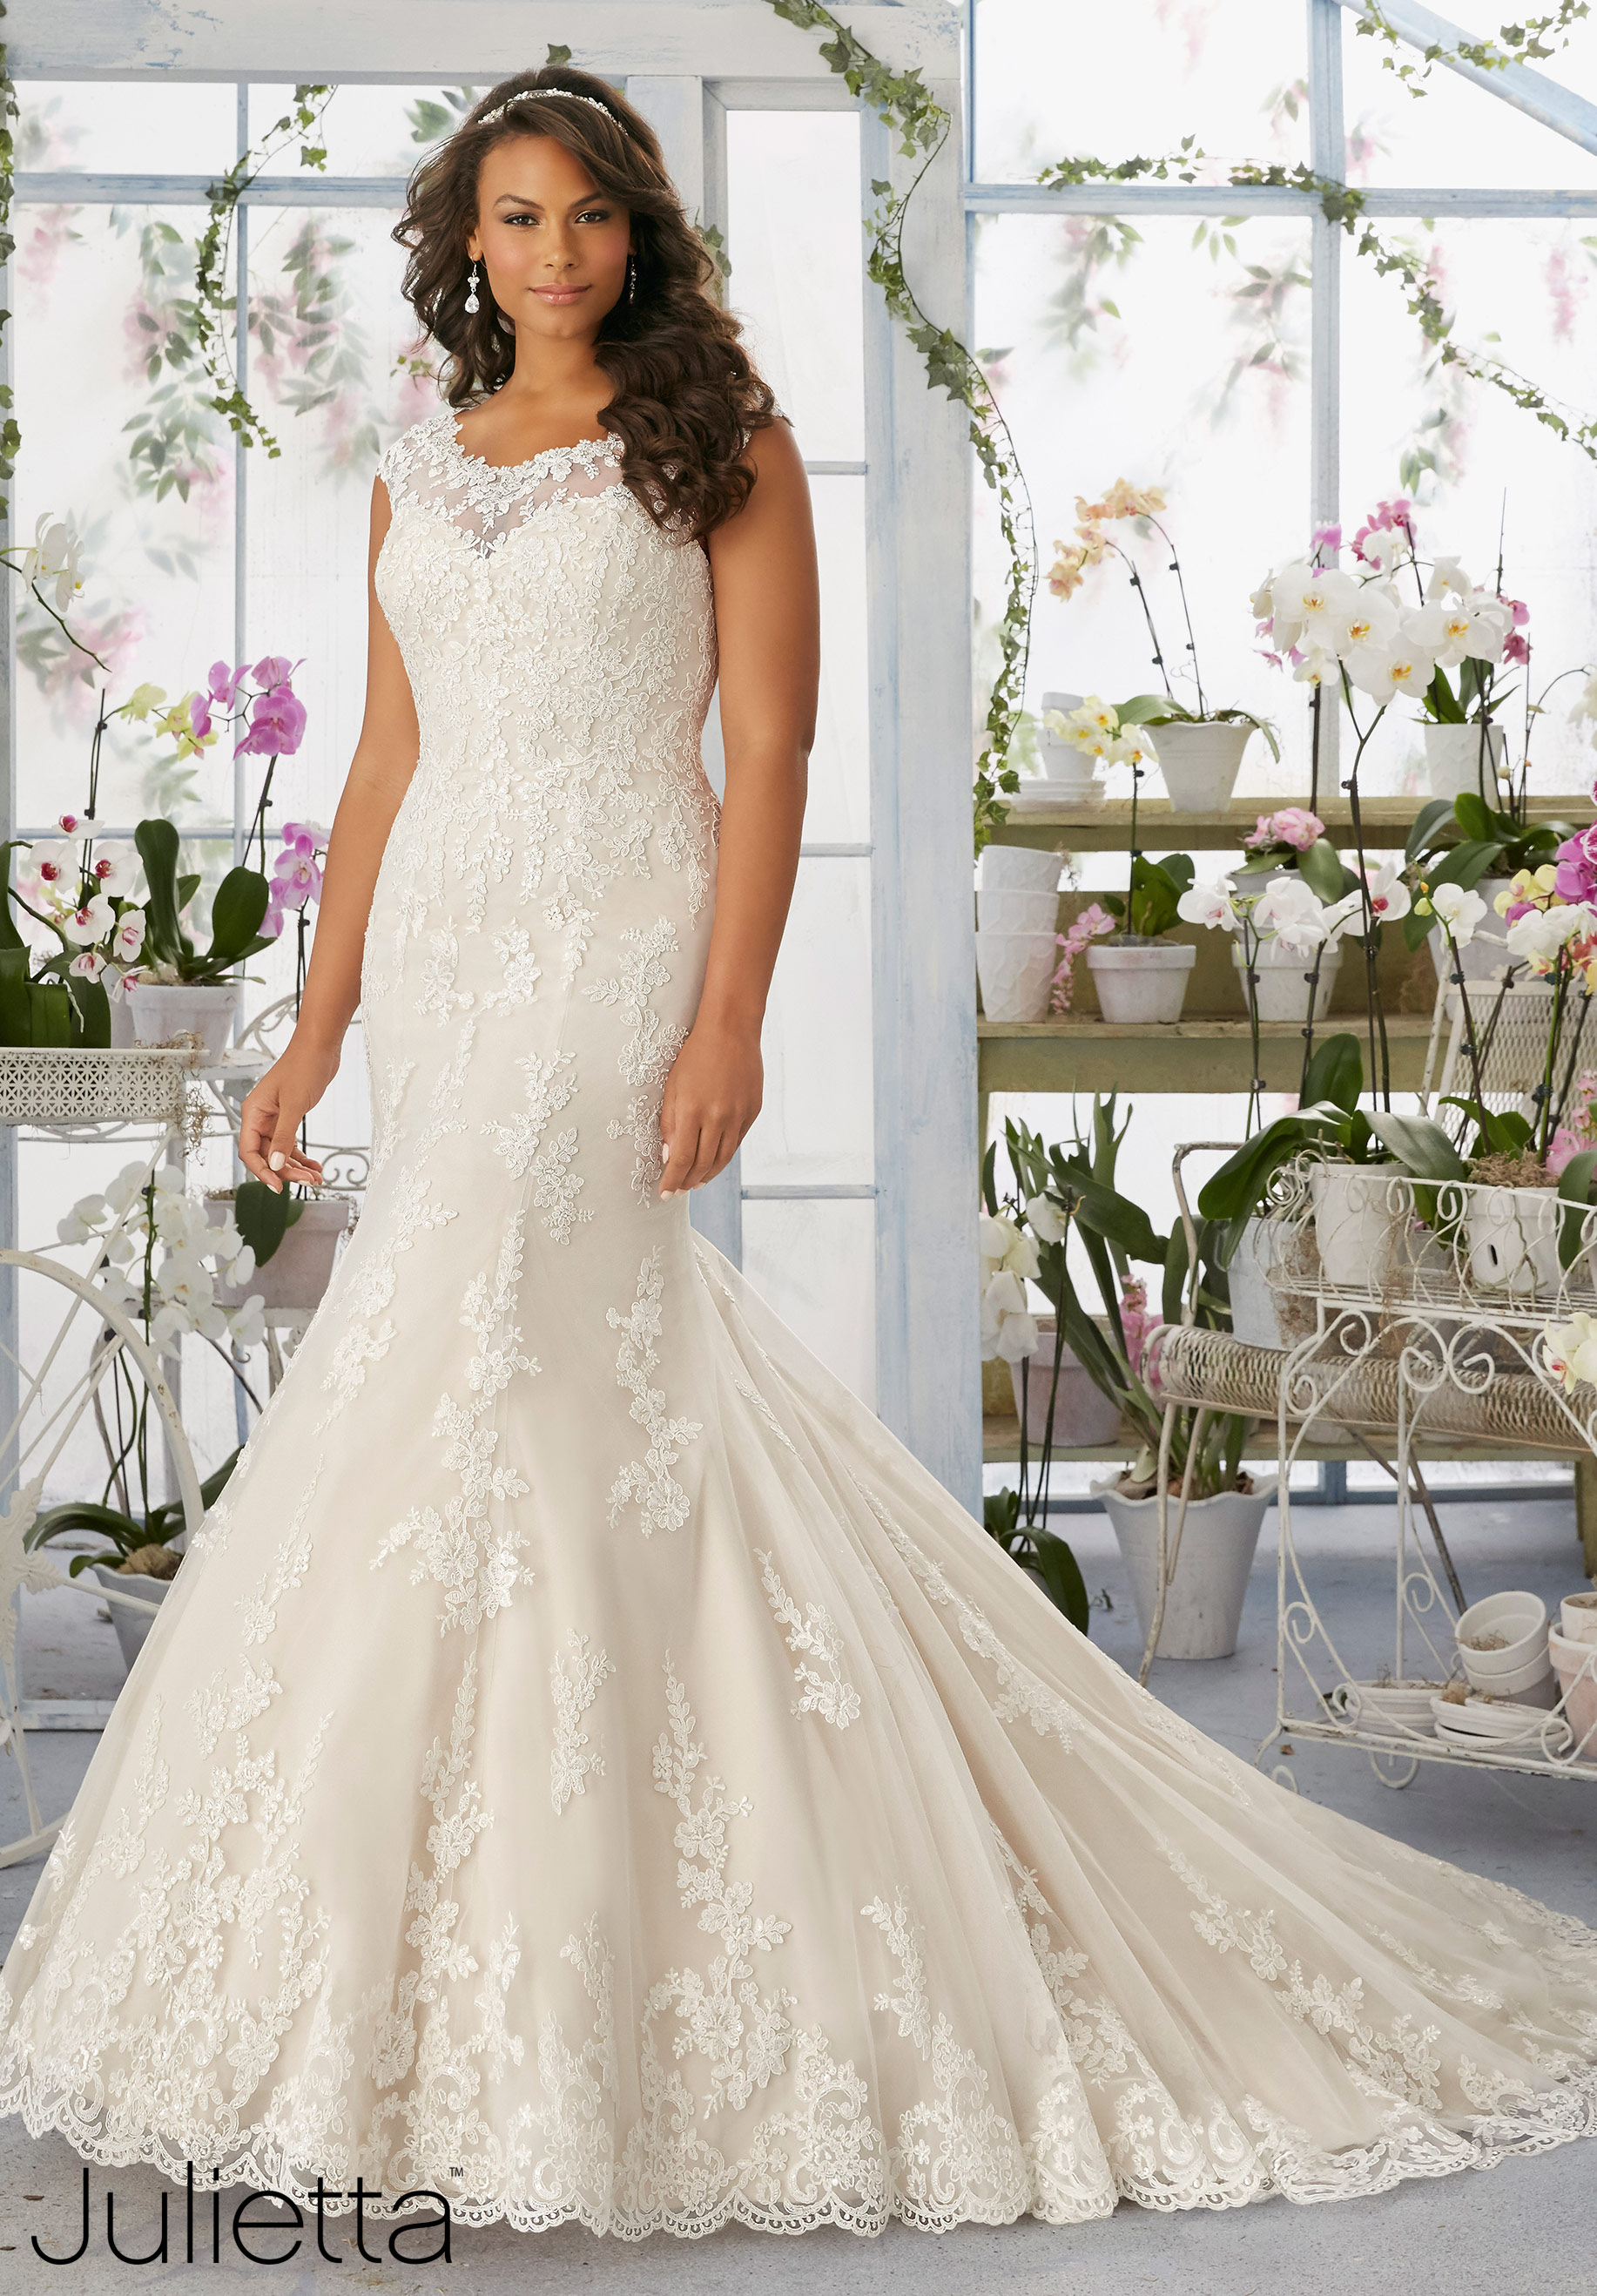 Mori Lee Wedding Dress Julietta 3194 Catrinas Bridal